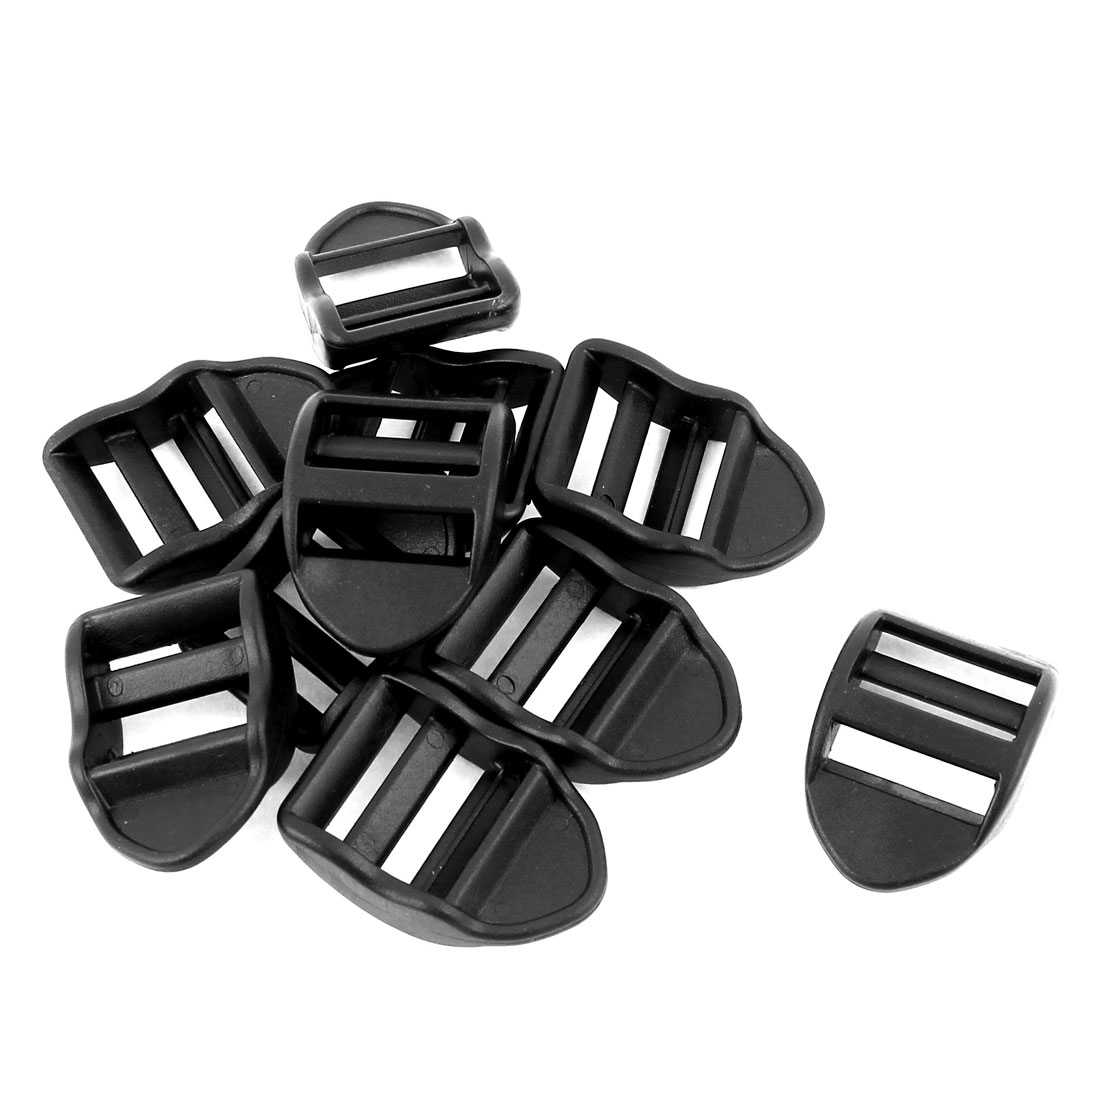 Plastic Ladder Slider Buckles Lock Black 20mm Strap Width 10 Pcs